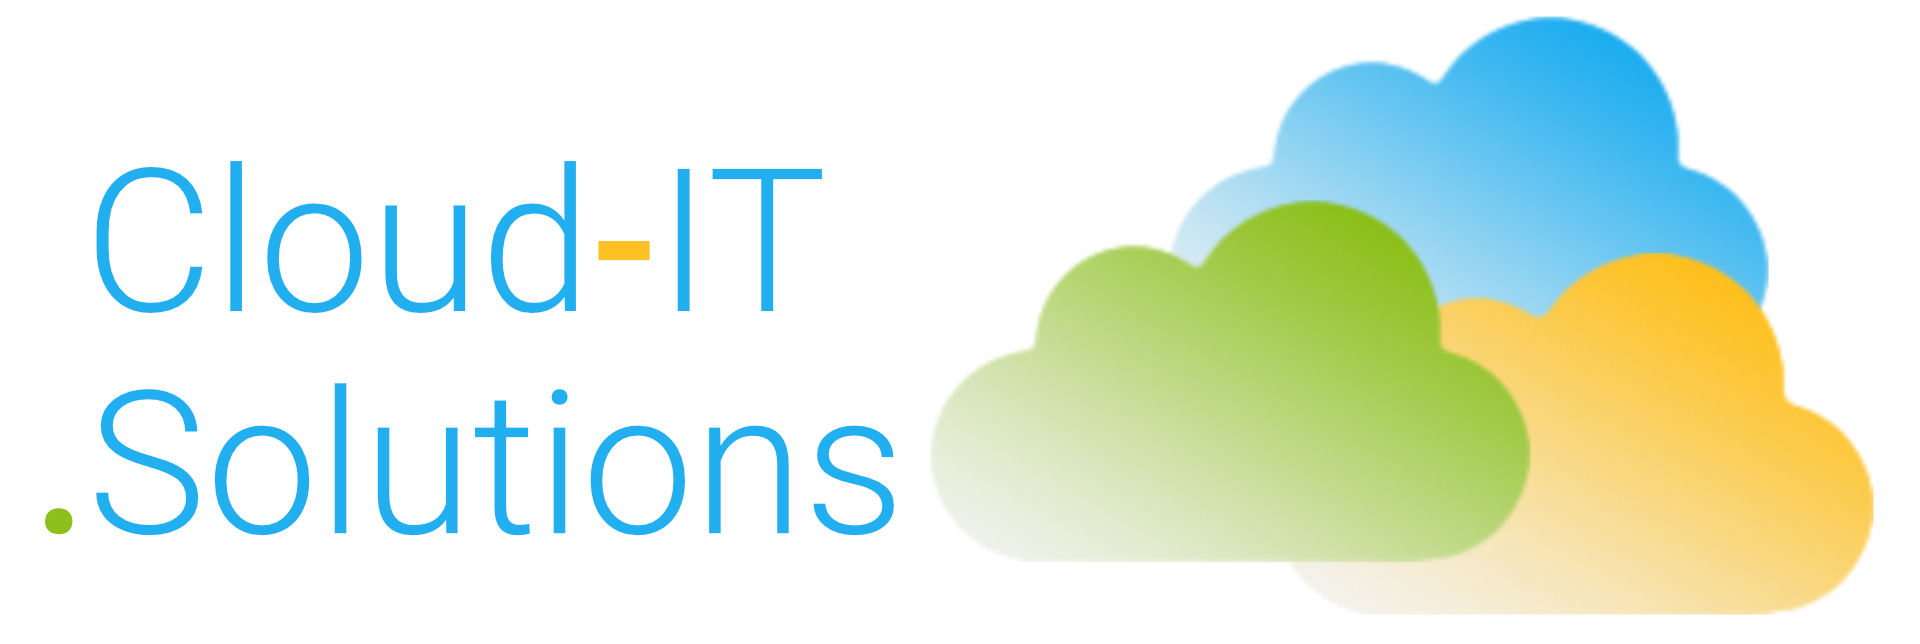 Cloud-IT.Solutions